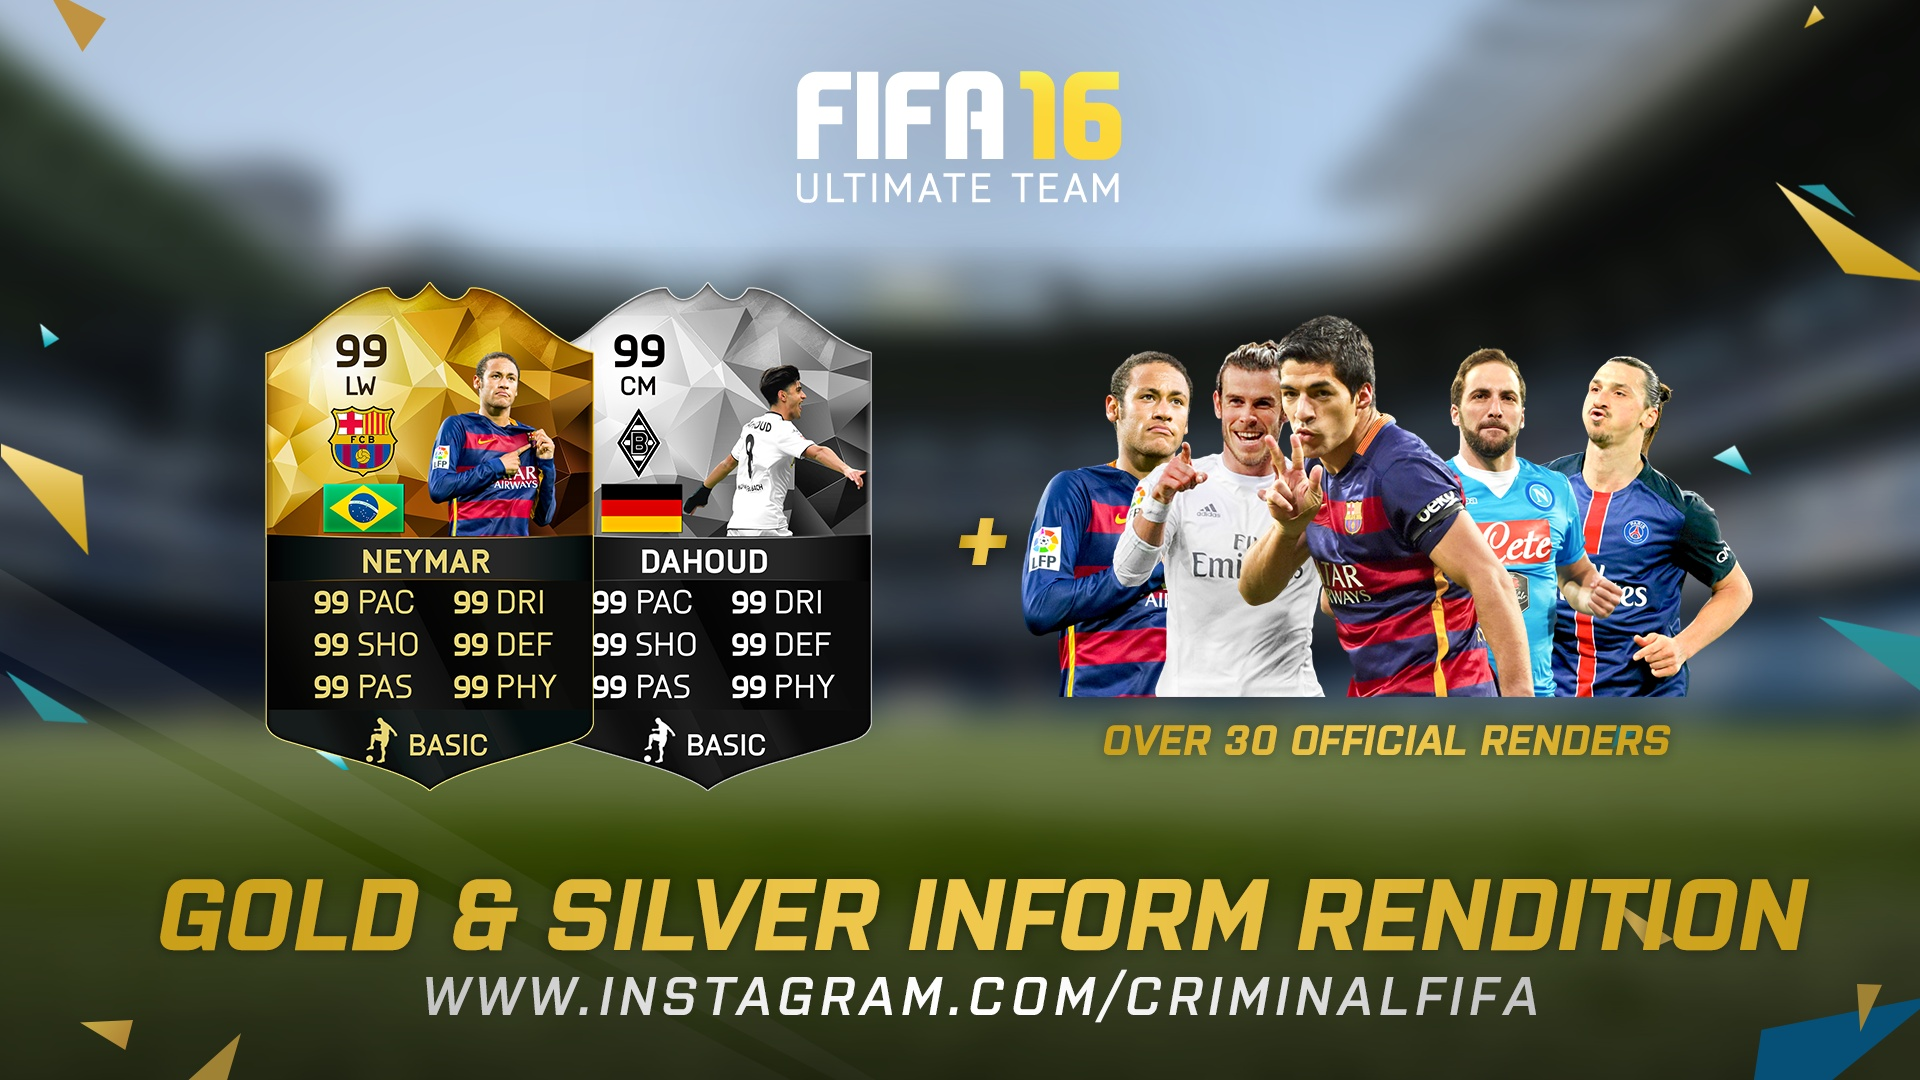 GOLD & SILVER INFORM RENDITIONS